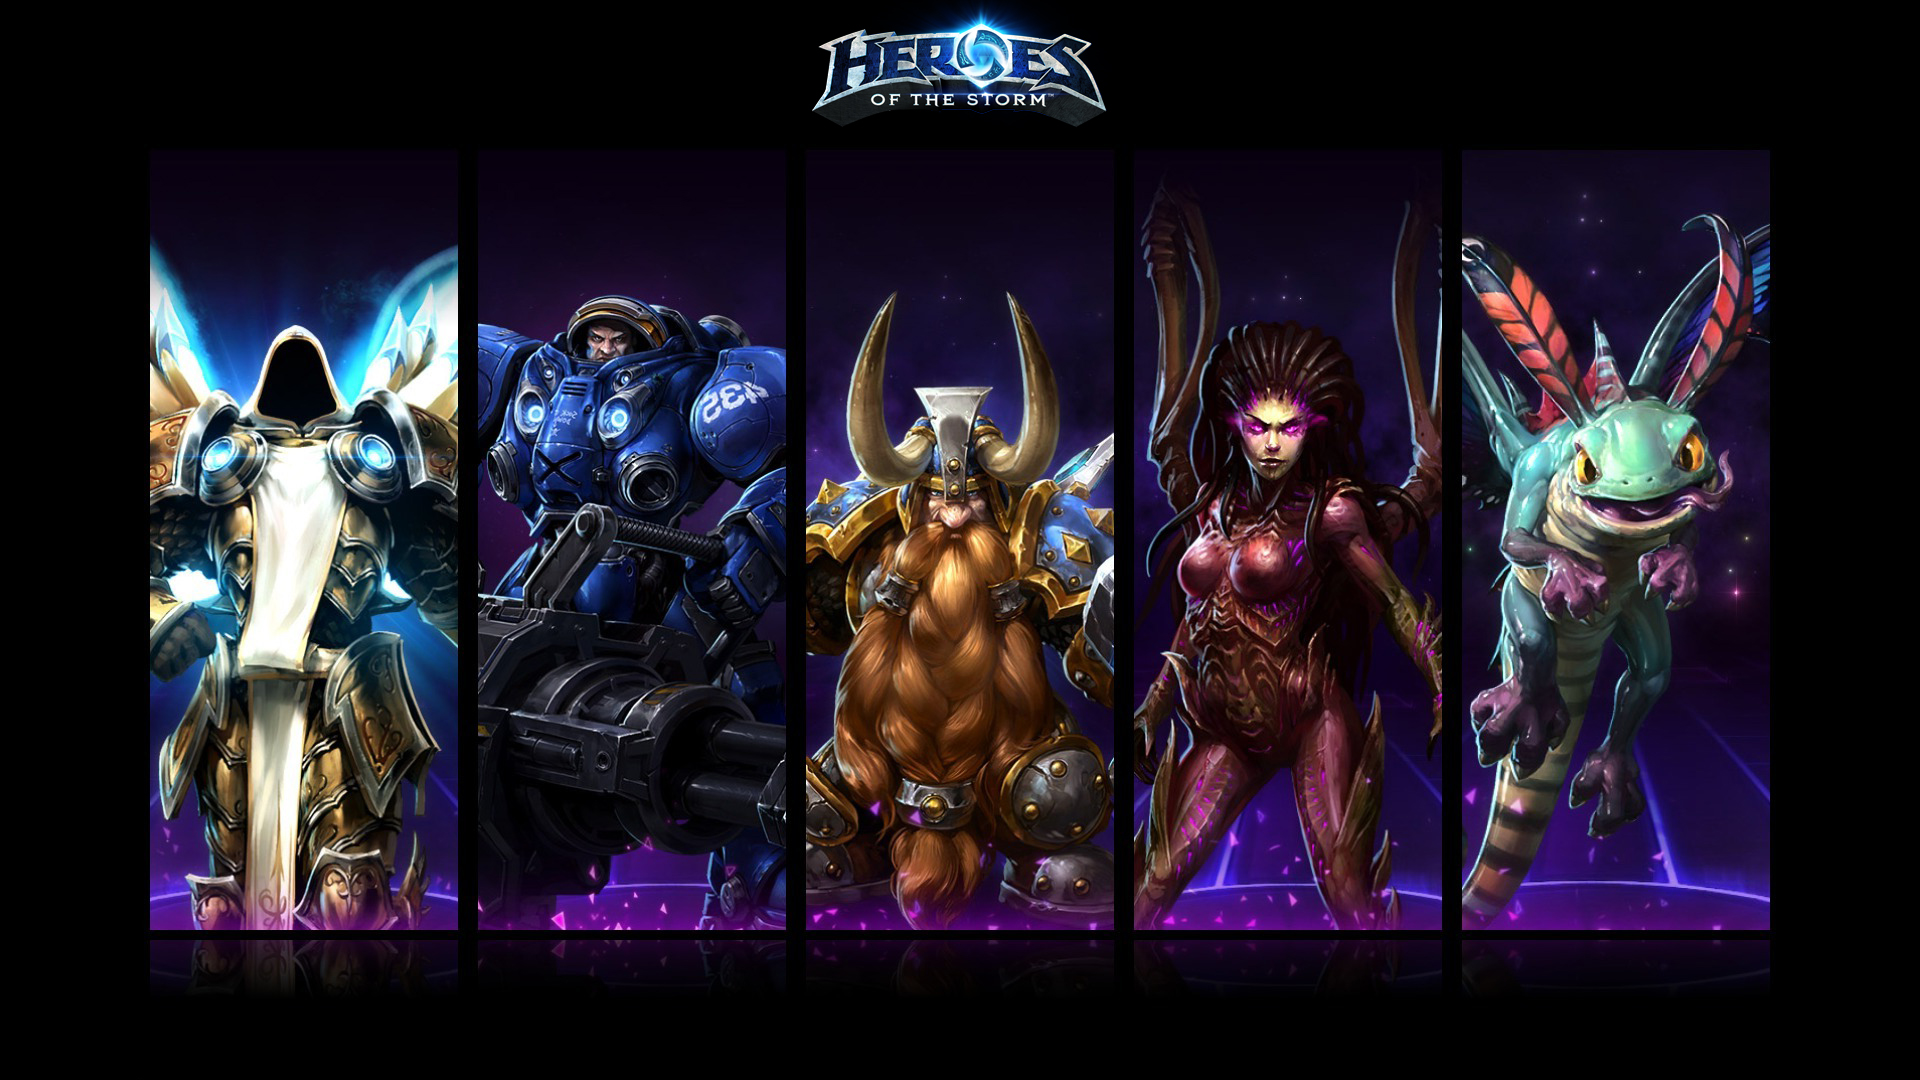 Heroes of the Storm wallpaper 9